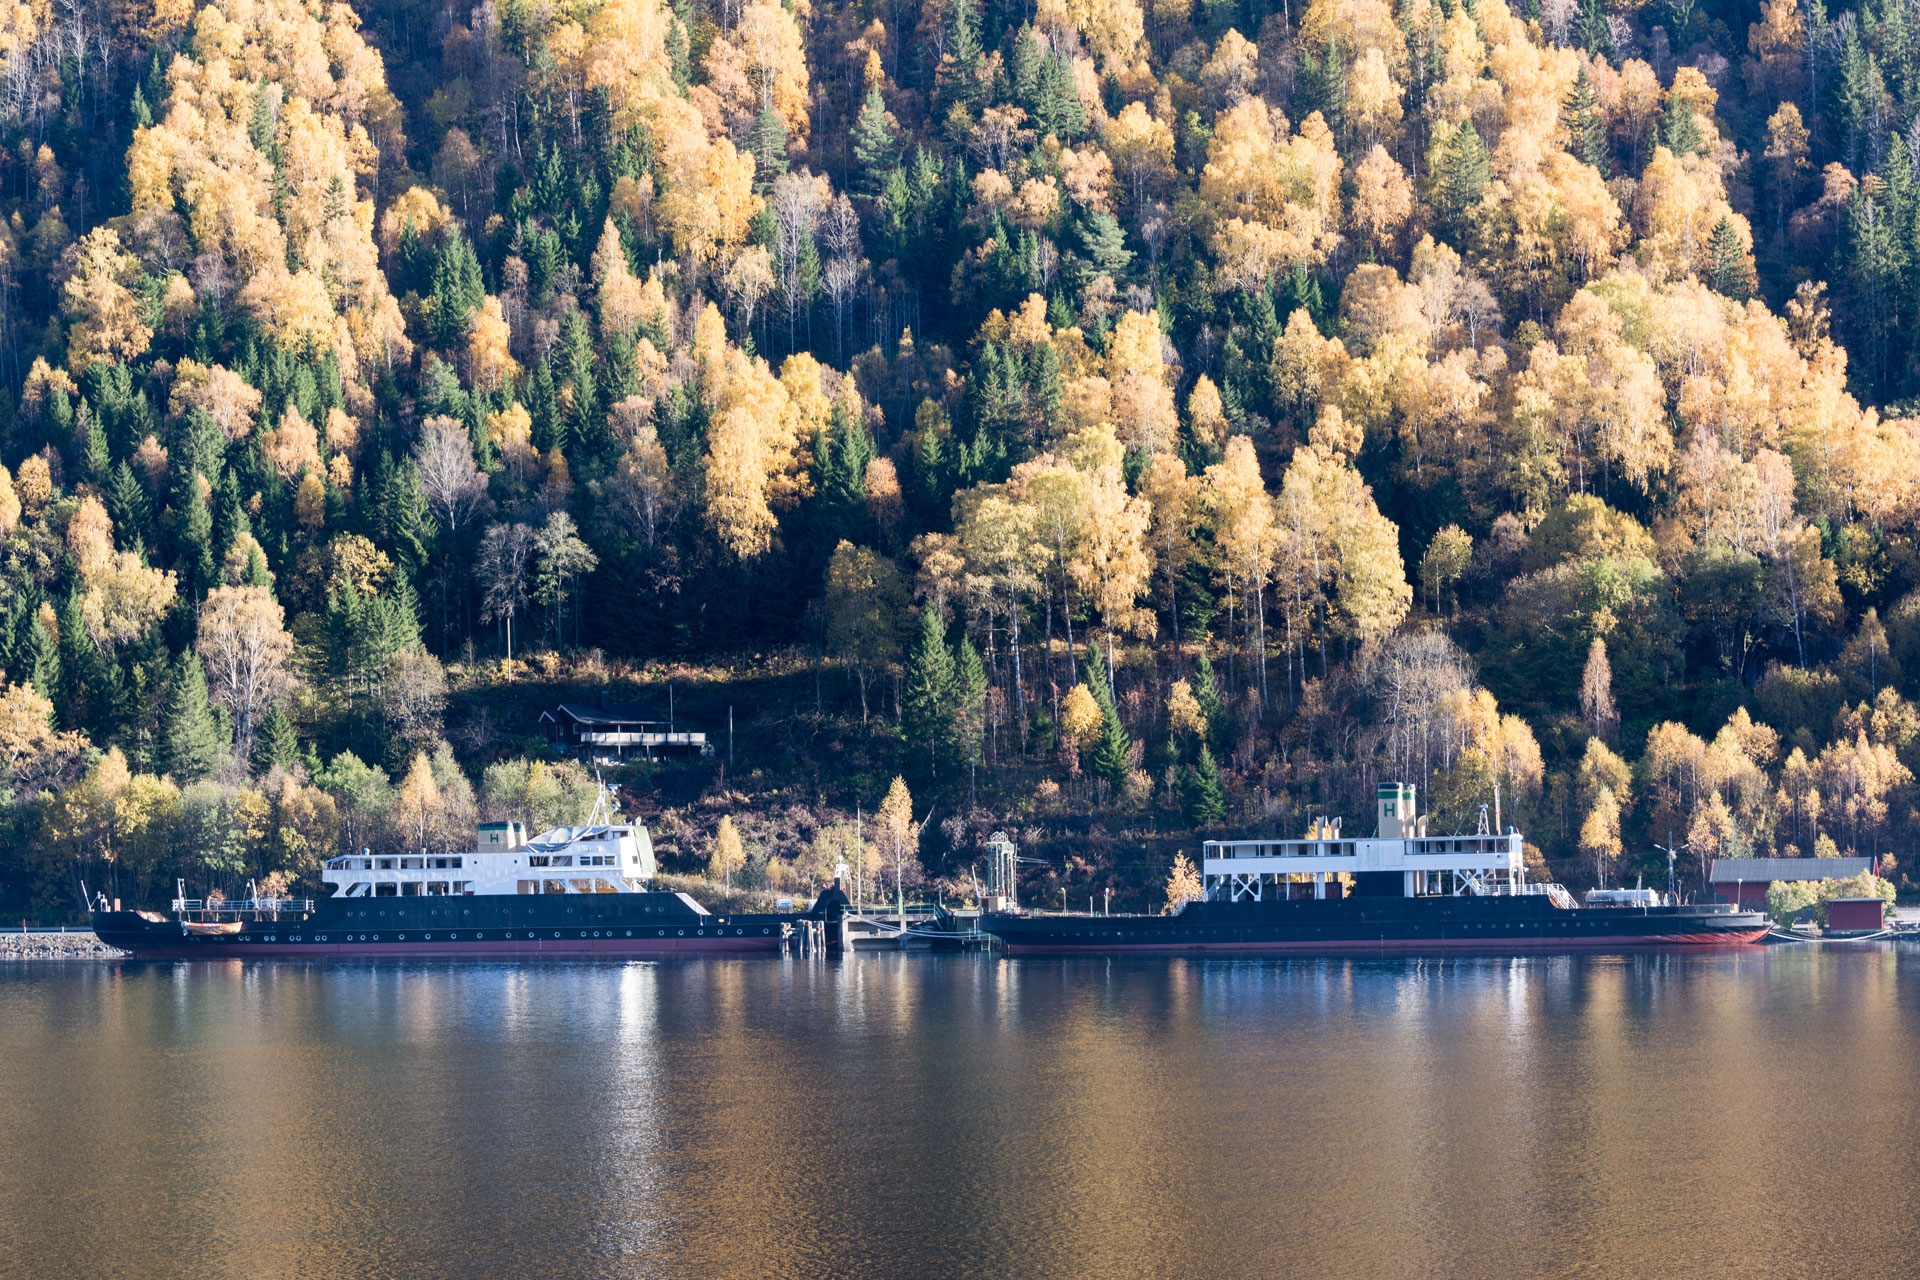 """Storegut and Ammonia. The ferries M/F """"Storegut"""" and D/F """"Ammonia """" are part of the transport system around Rjukan and Notodden which consists of the Tinnos Line ferries on Lake Tinnsjøen and the Rjukan Line. Photo: Per Berntsen, the Directorate for Cultural Heritage"""